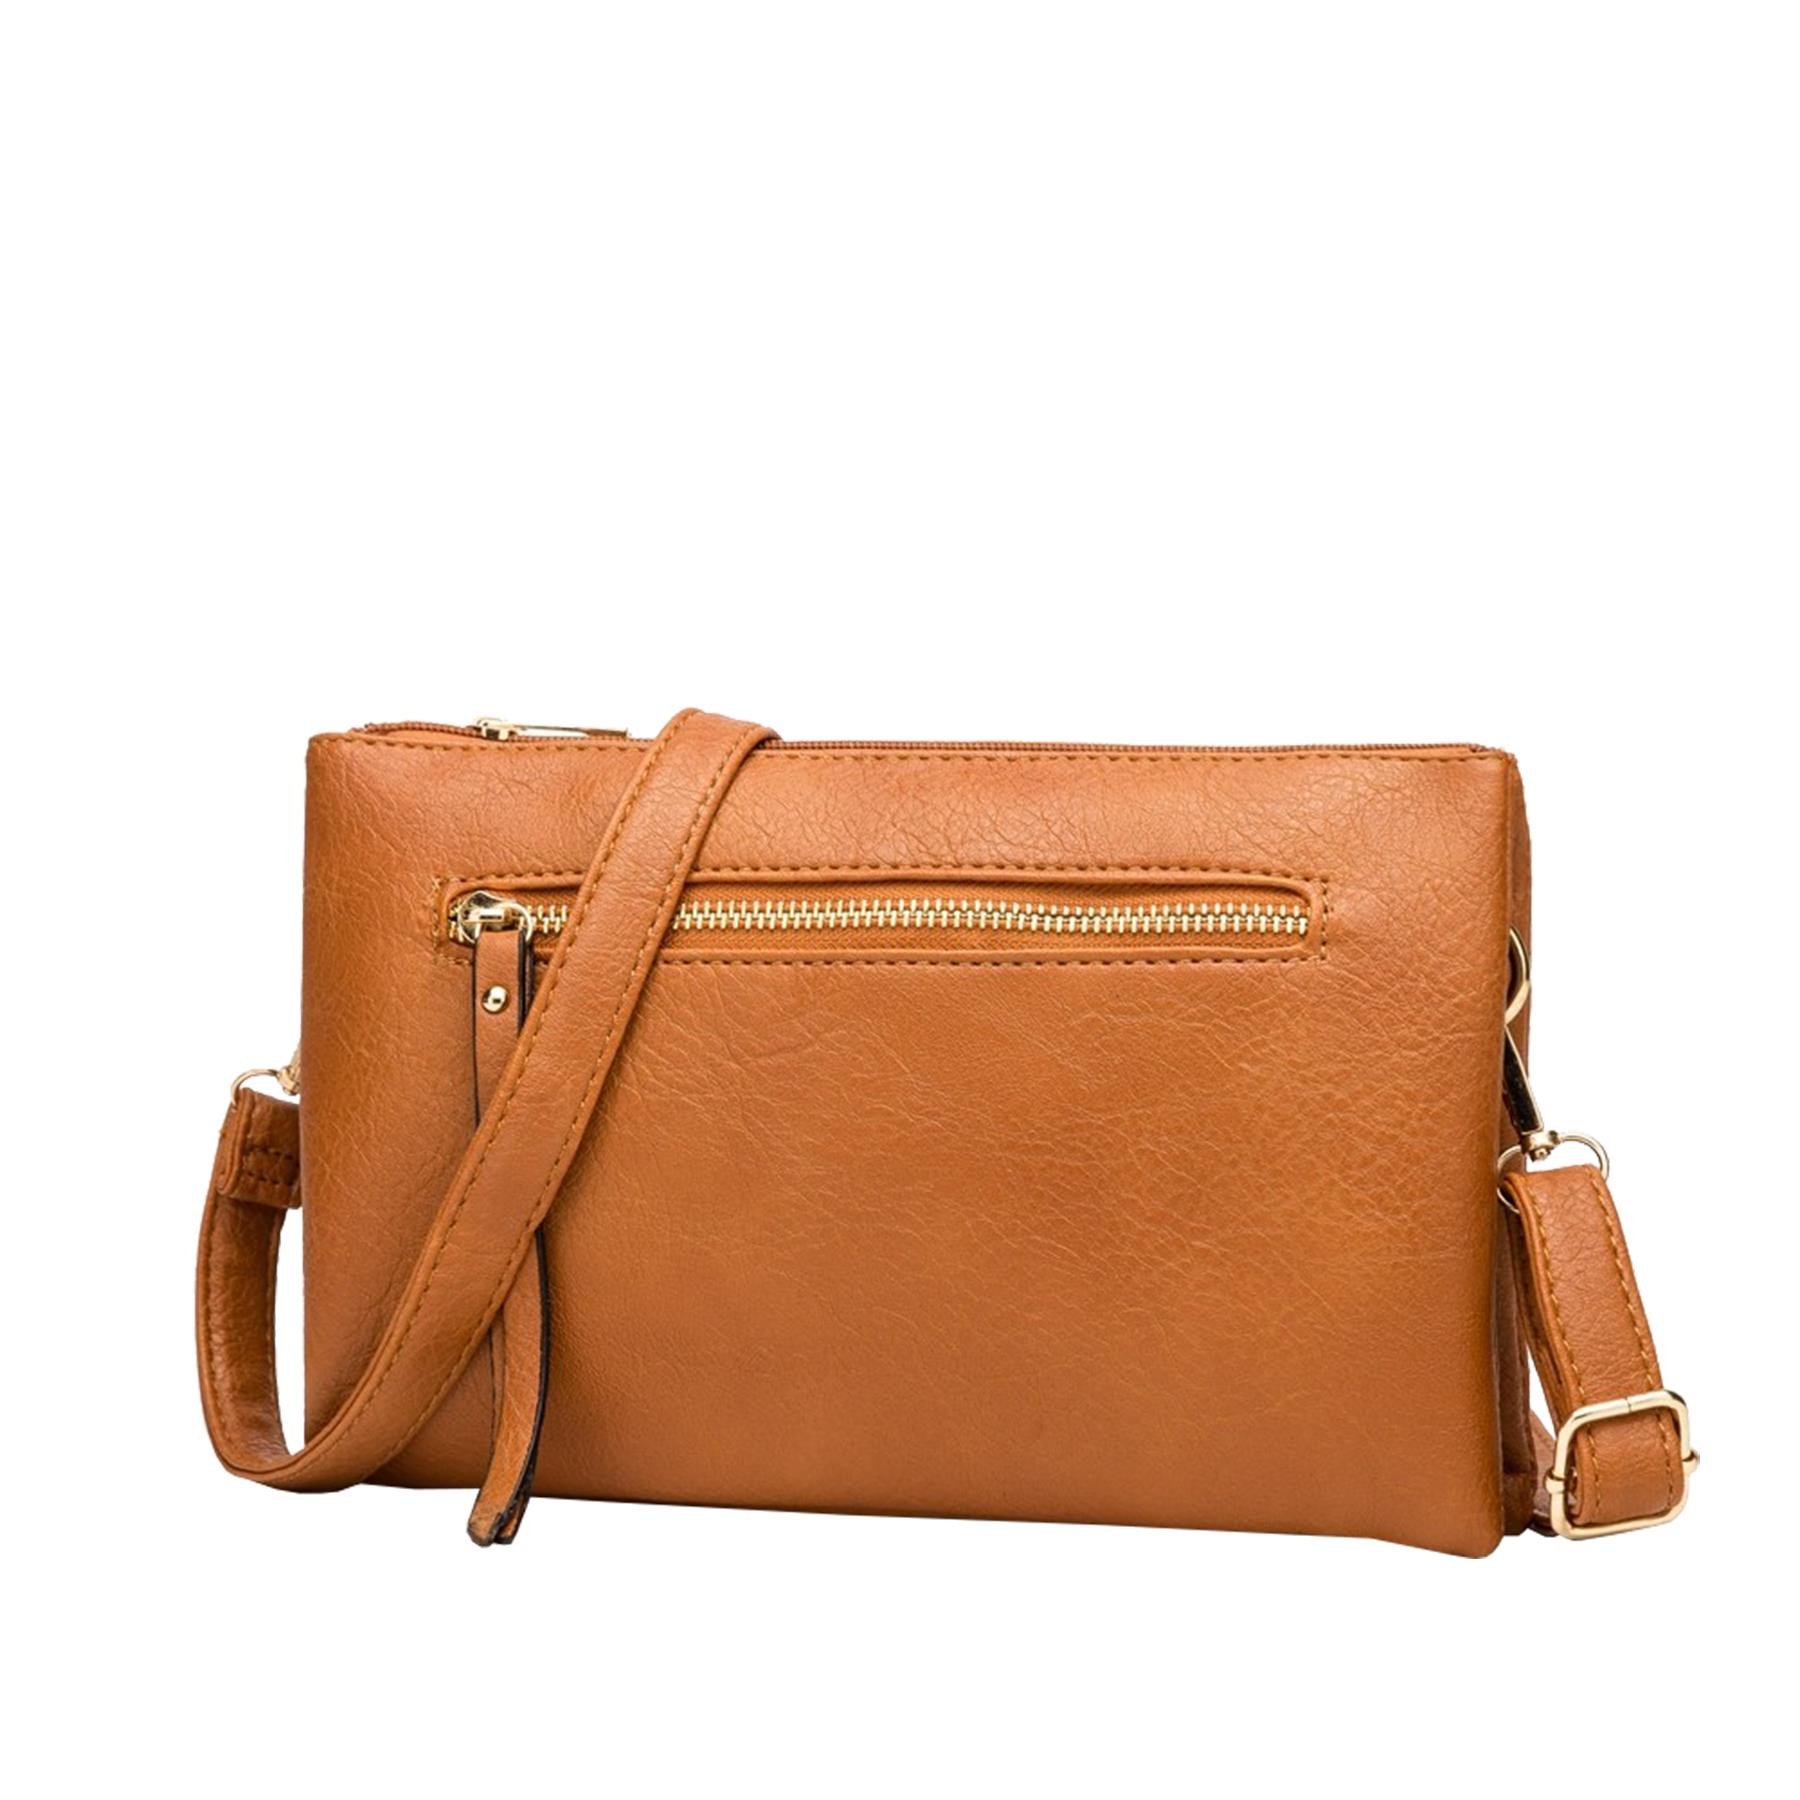 New-Plain-Synthetic-Leather-Women-s-Simple-Casual-Cross-Body-Bag thumbnail 15